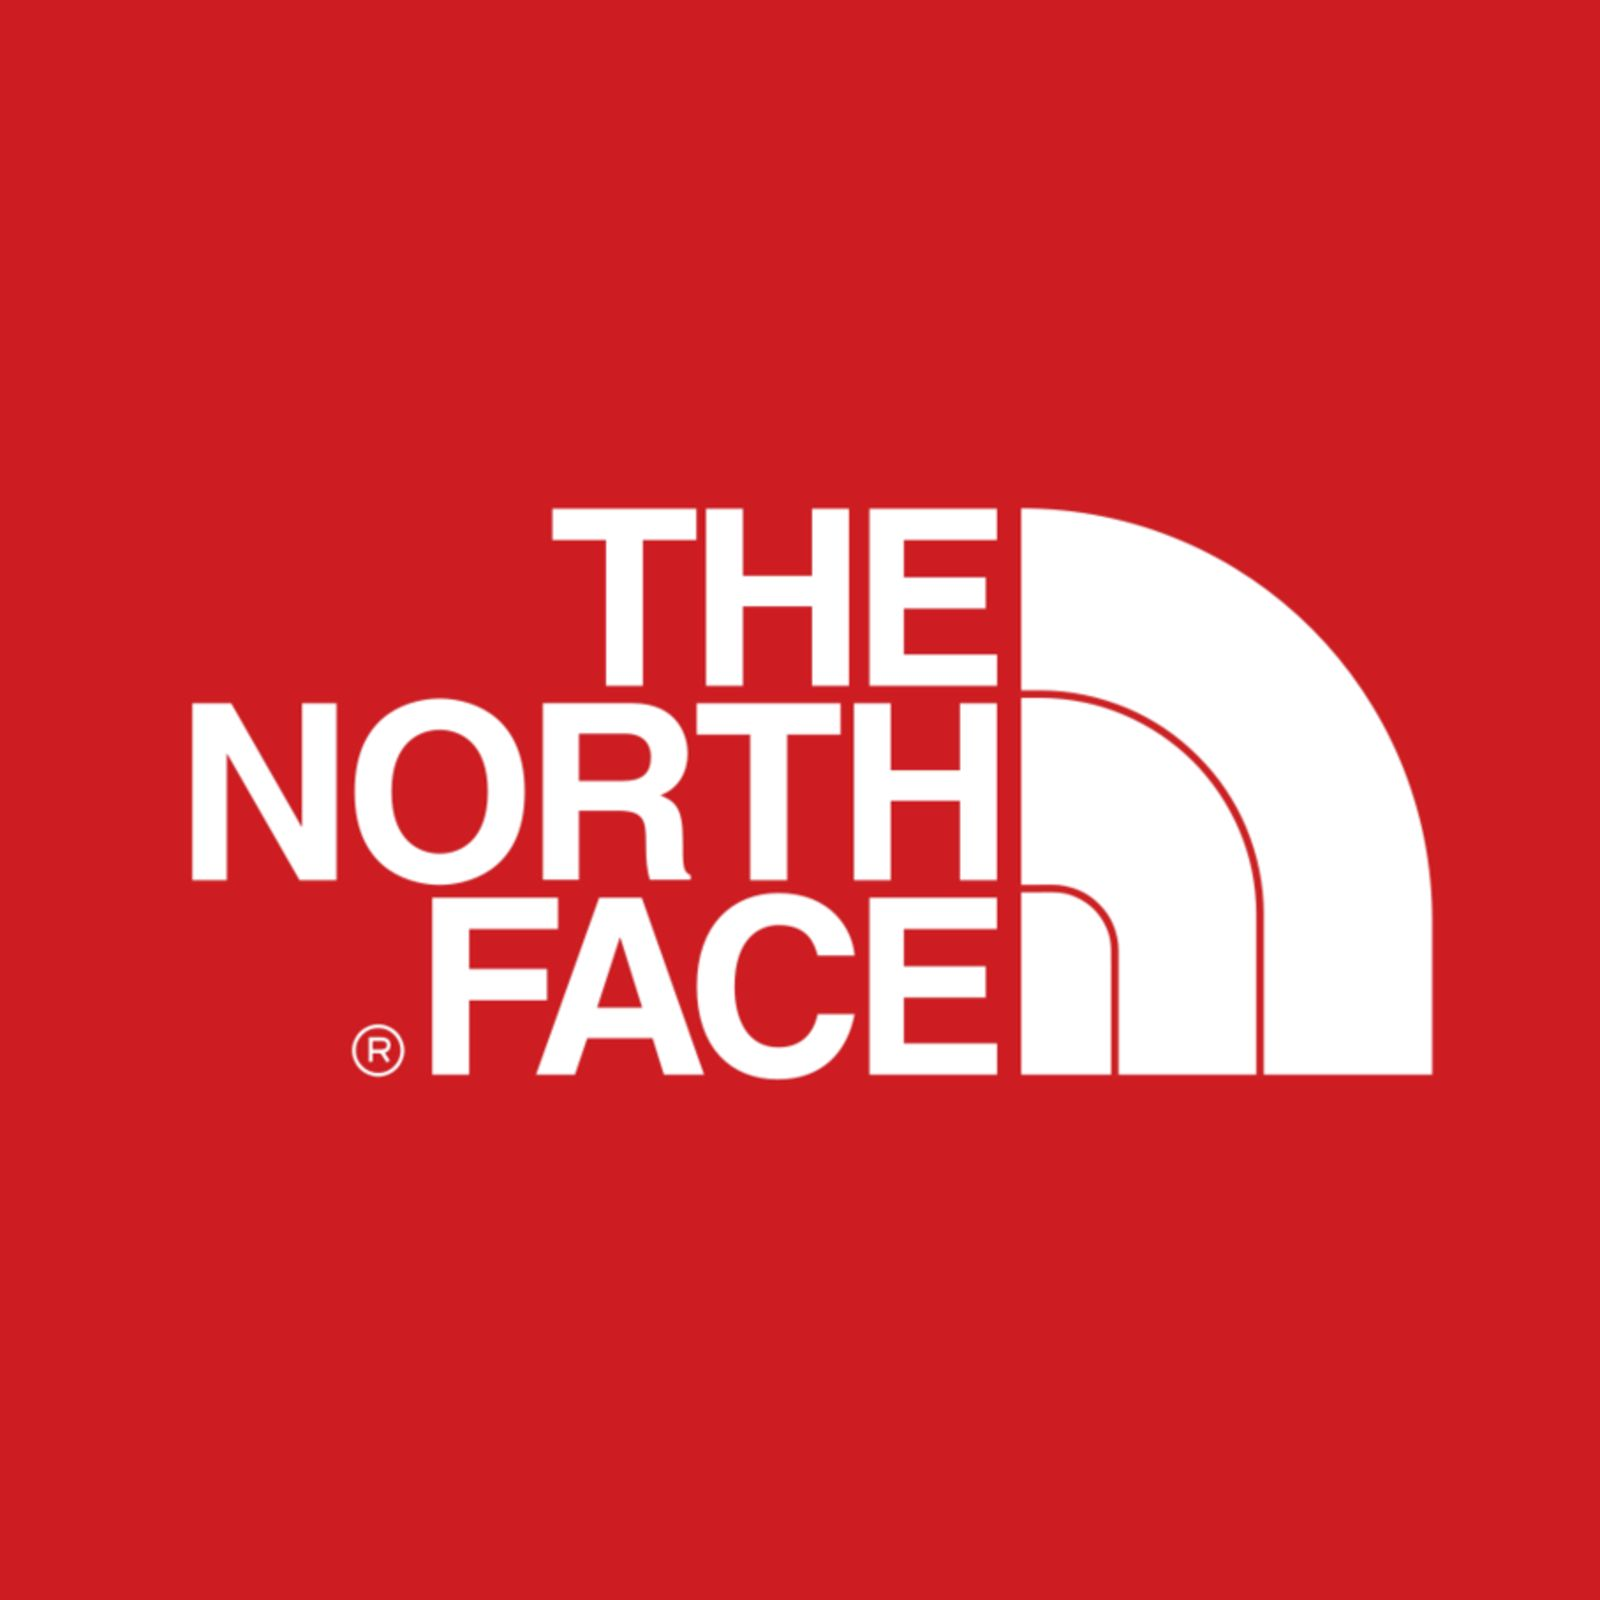 THE NORTH FACE (Image 1)